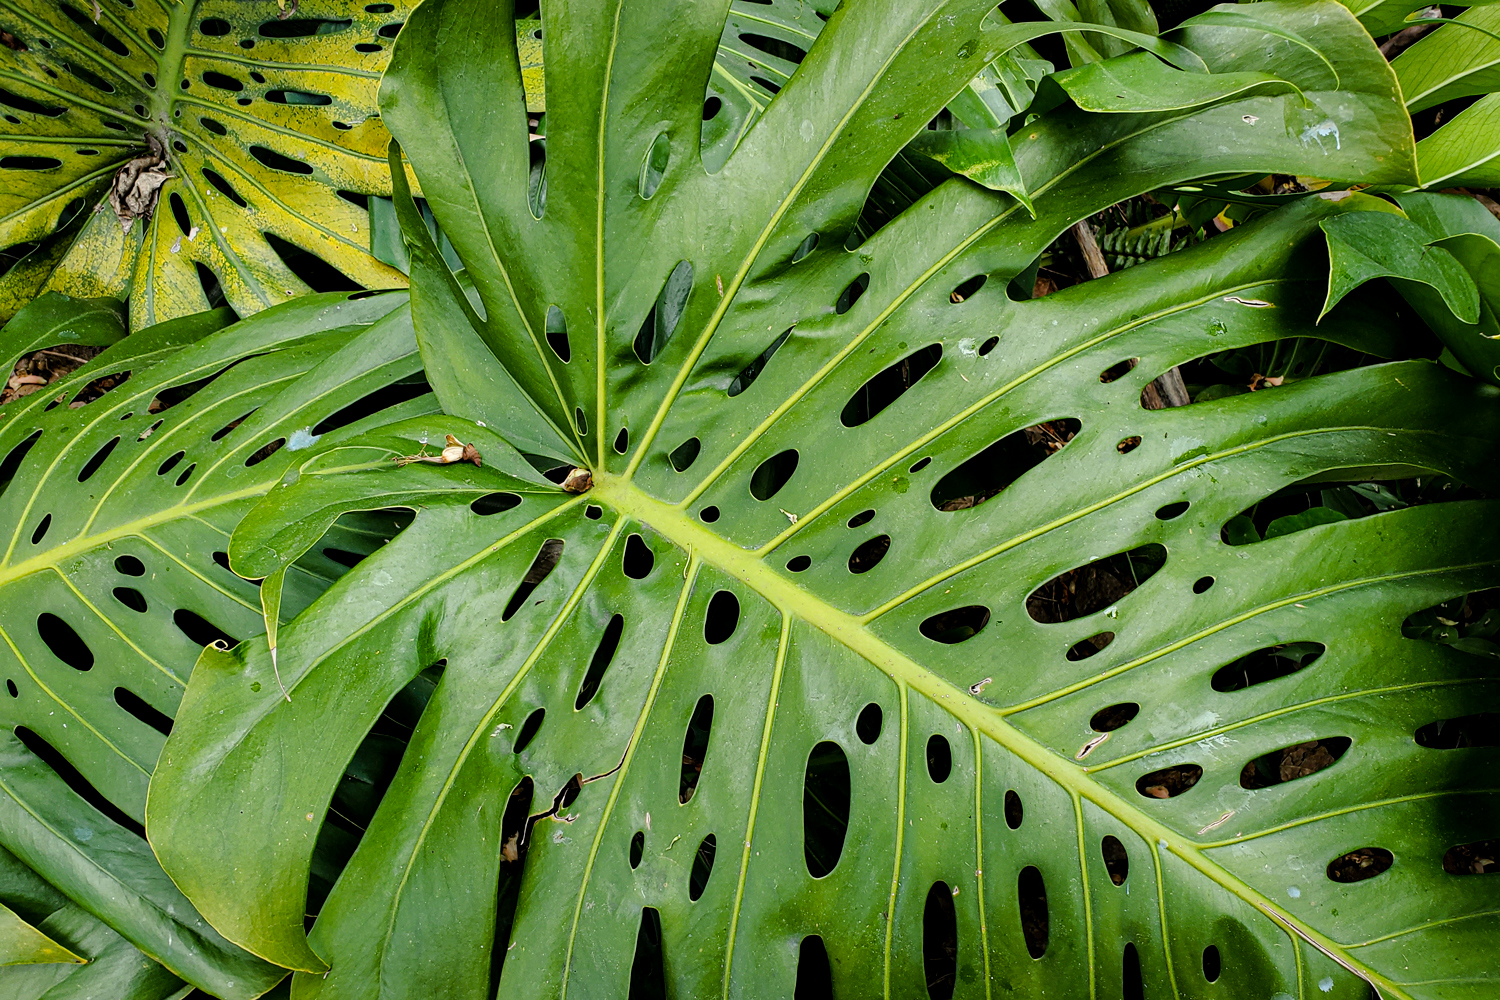 A leaf over 2 feet long, with great detail in the webbing